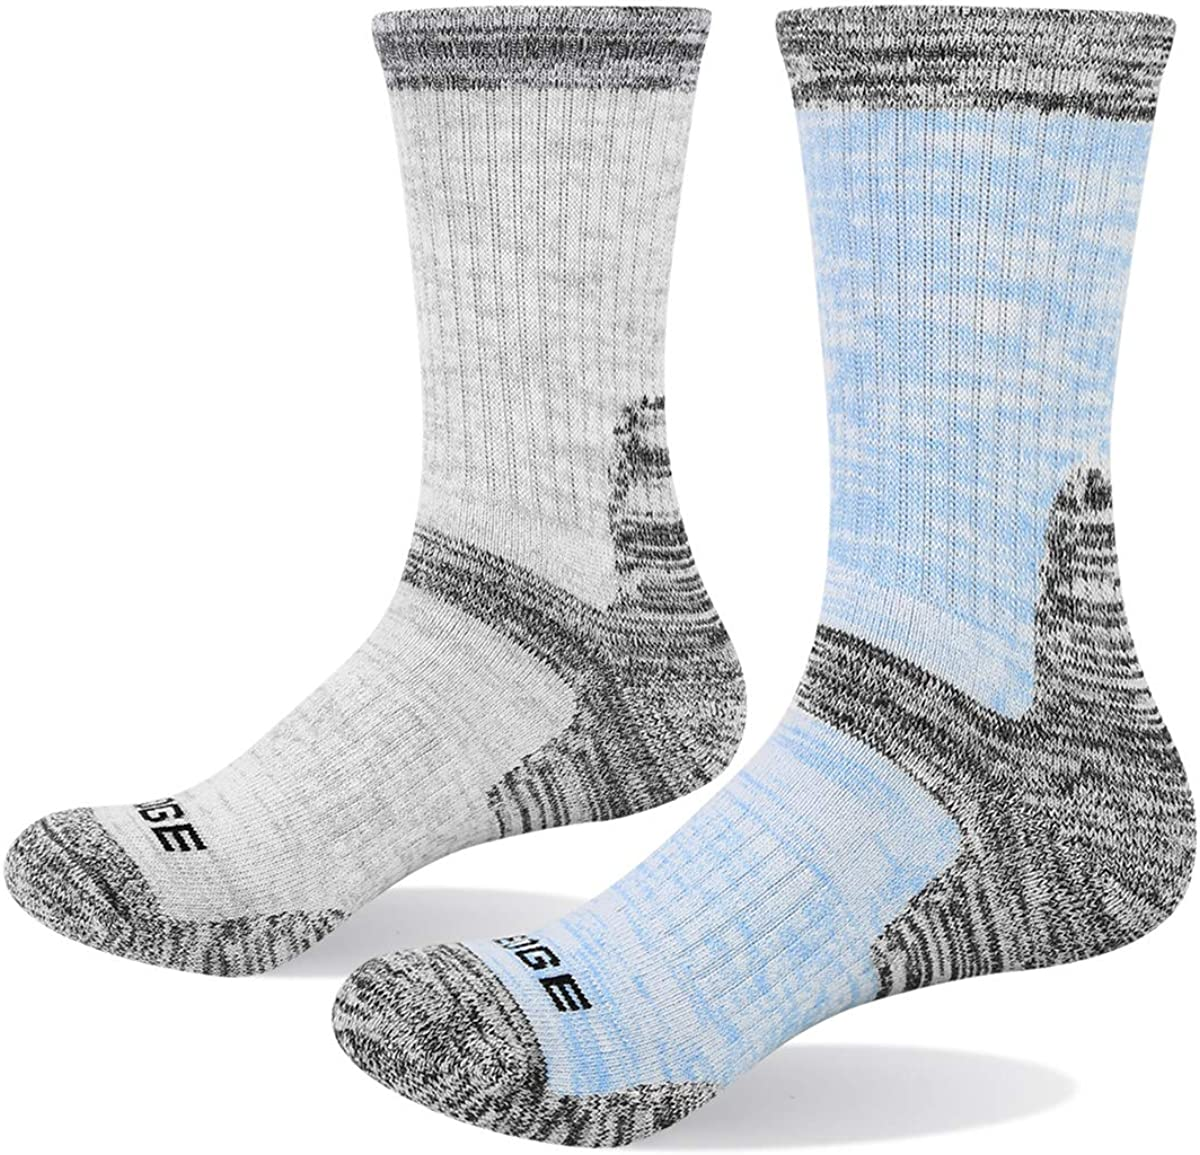 YUEDGE Women's Cushion Cotton Crew Socks Multi Performance Athletic Hiking Socks(2 Pairs/Pack)